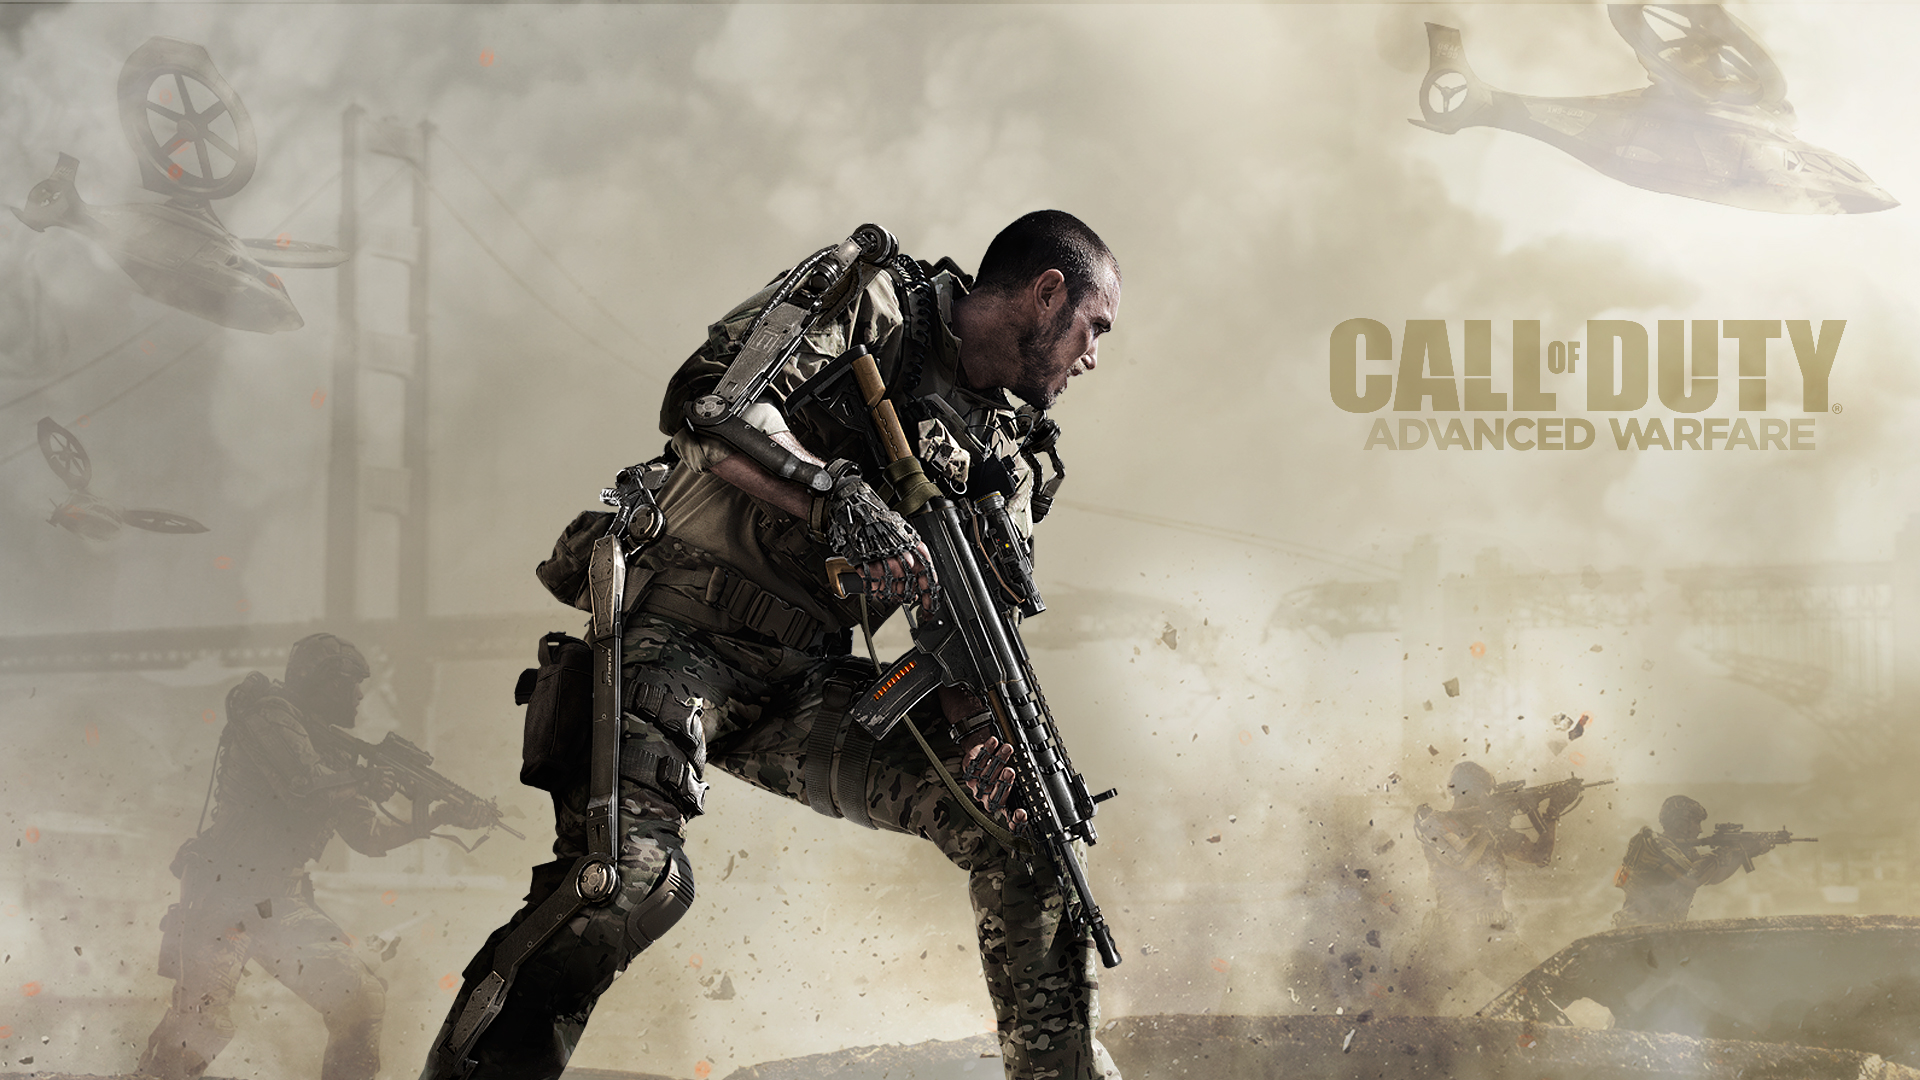 Call of Duty: Advanced Warfare gets final map pack next week ... Call Of Duty Advanced Warfare Next Map Pack on